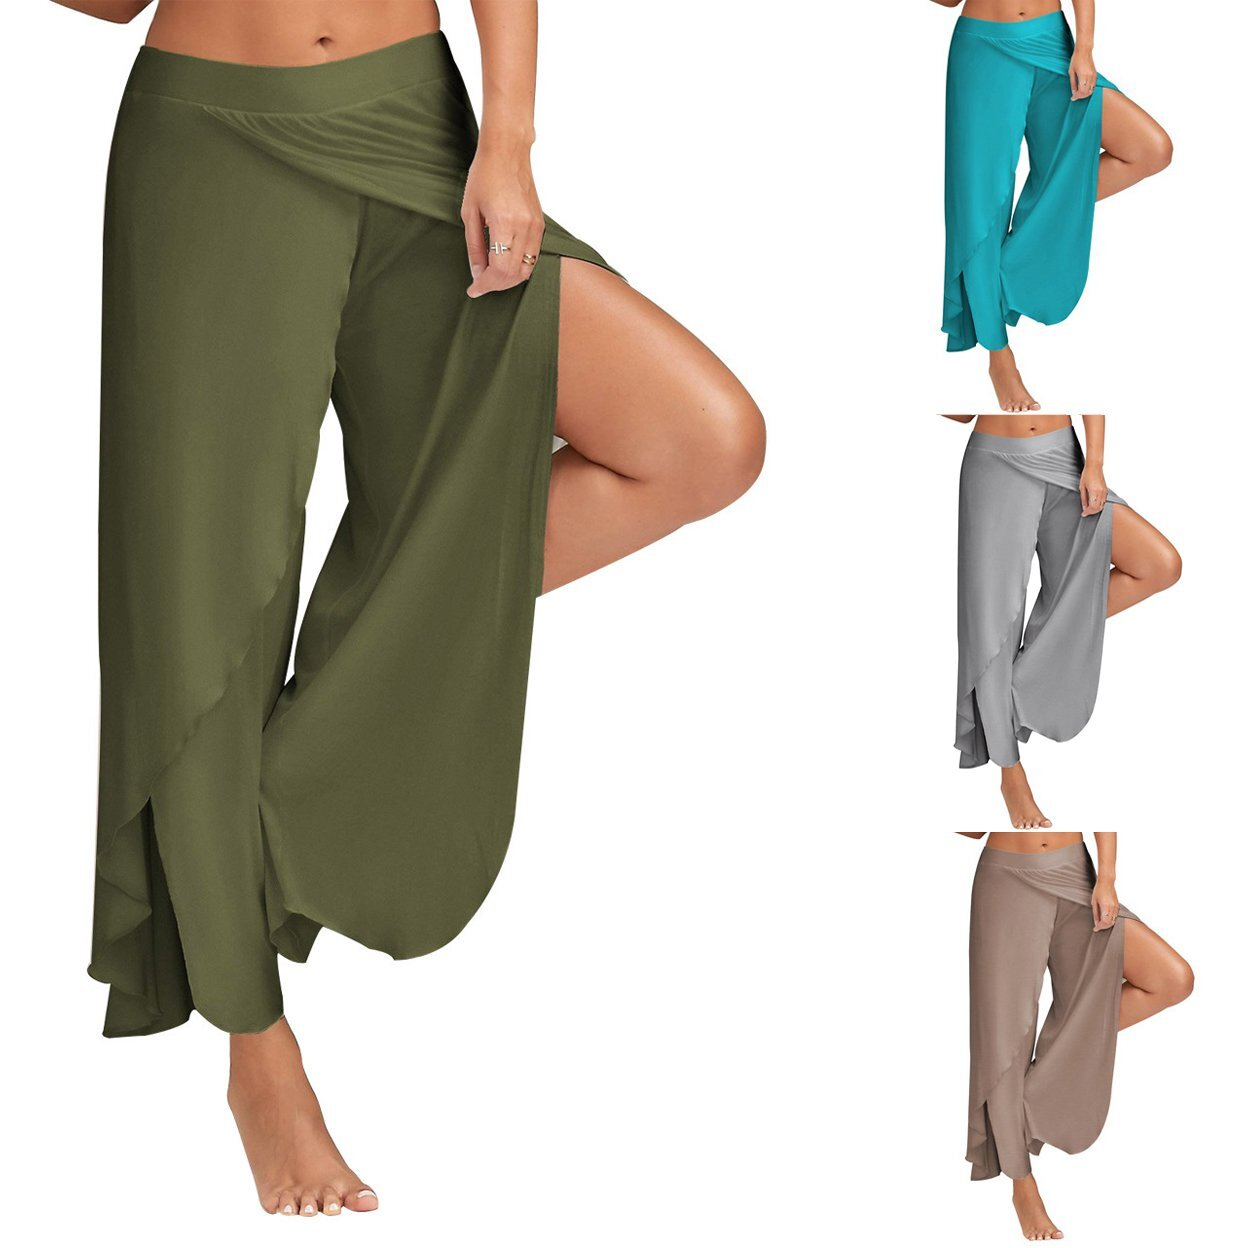 Tulipa Palazzo High Fashion Cocktail Pants -Size: X-Large, Color: Turquoise